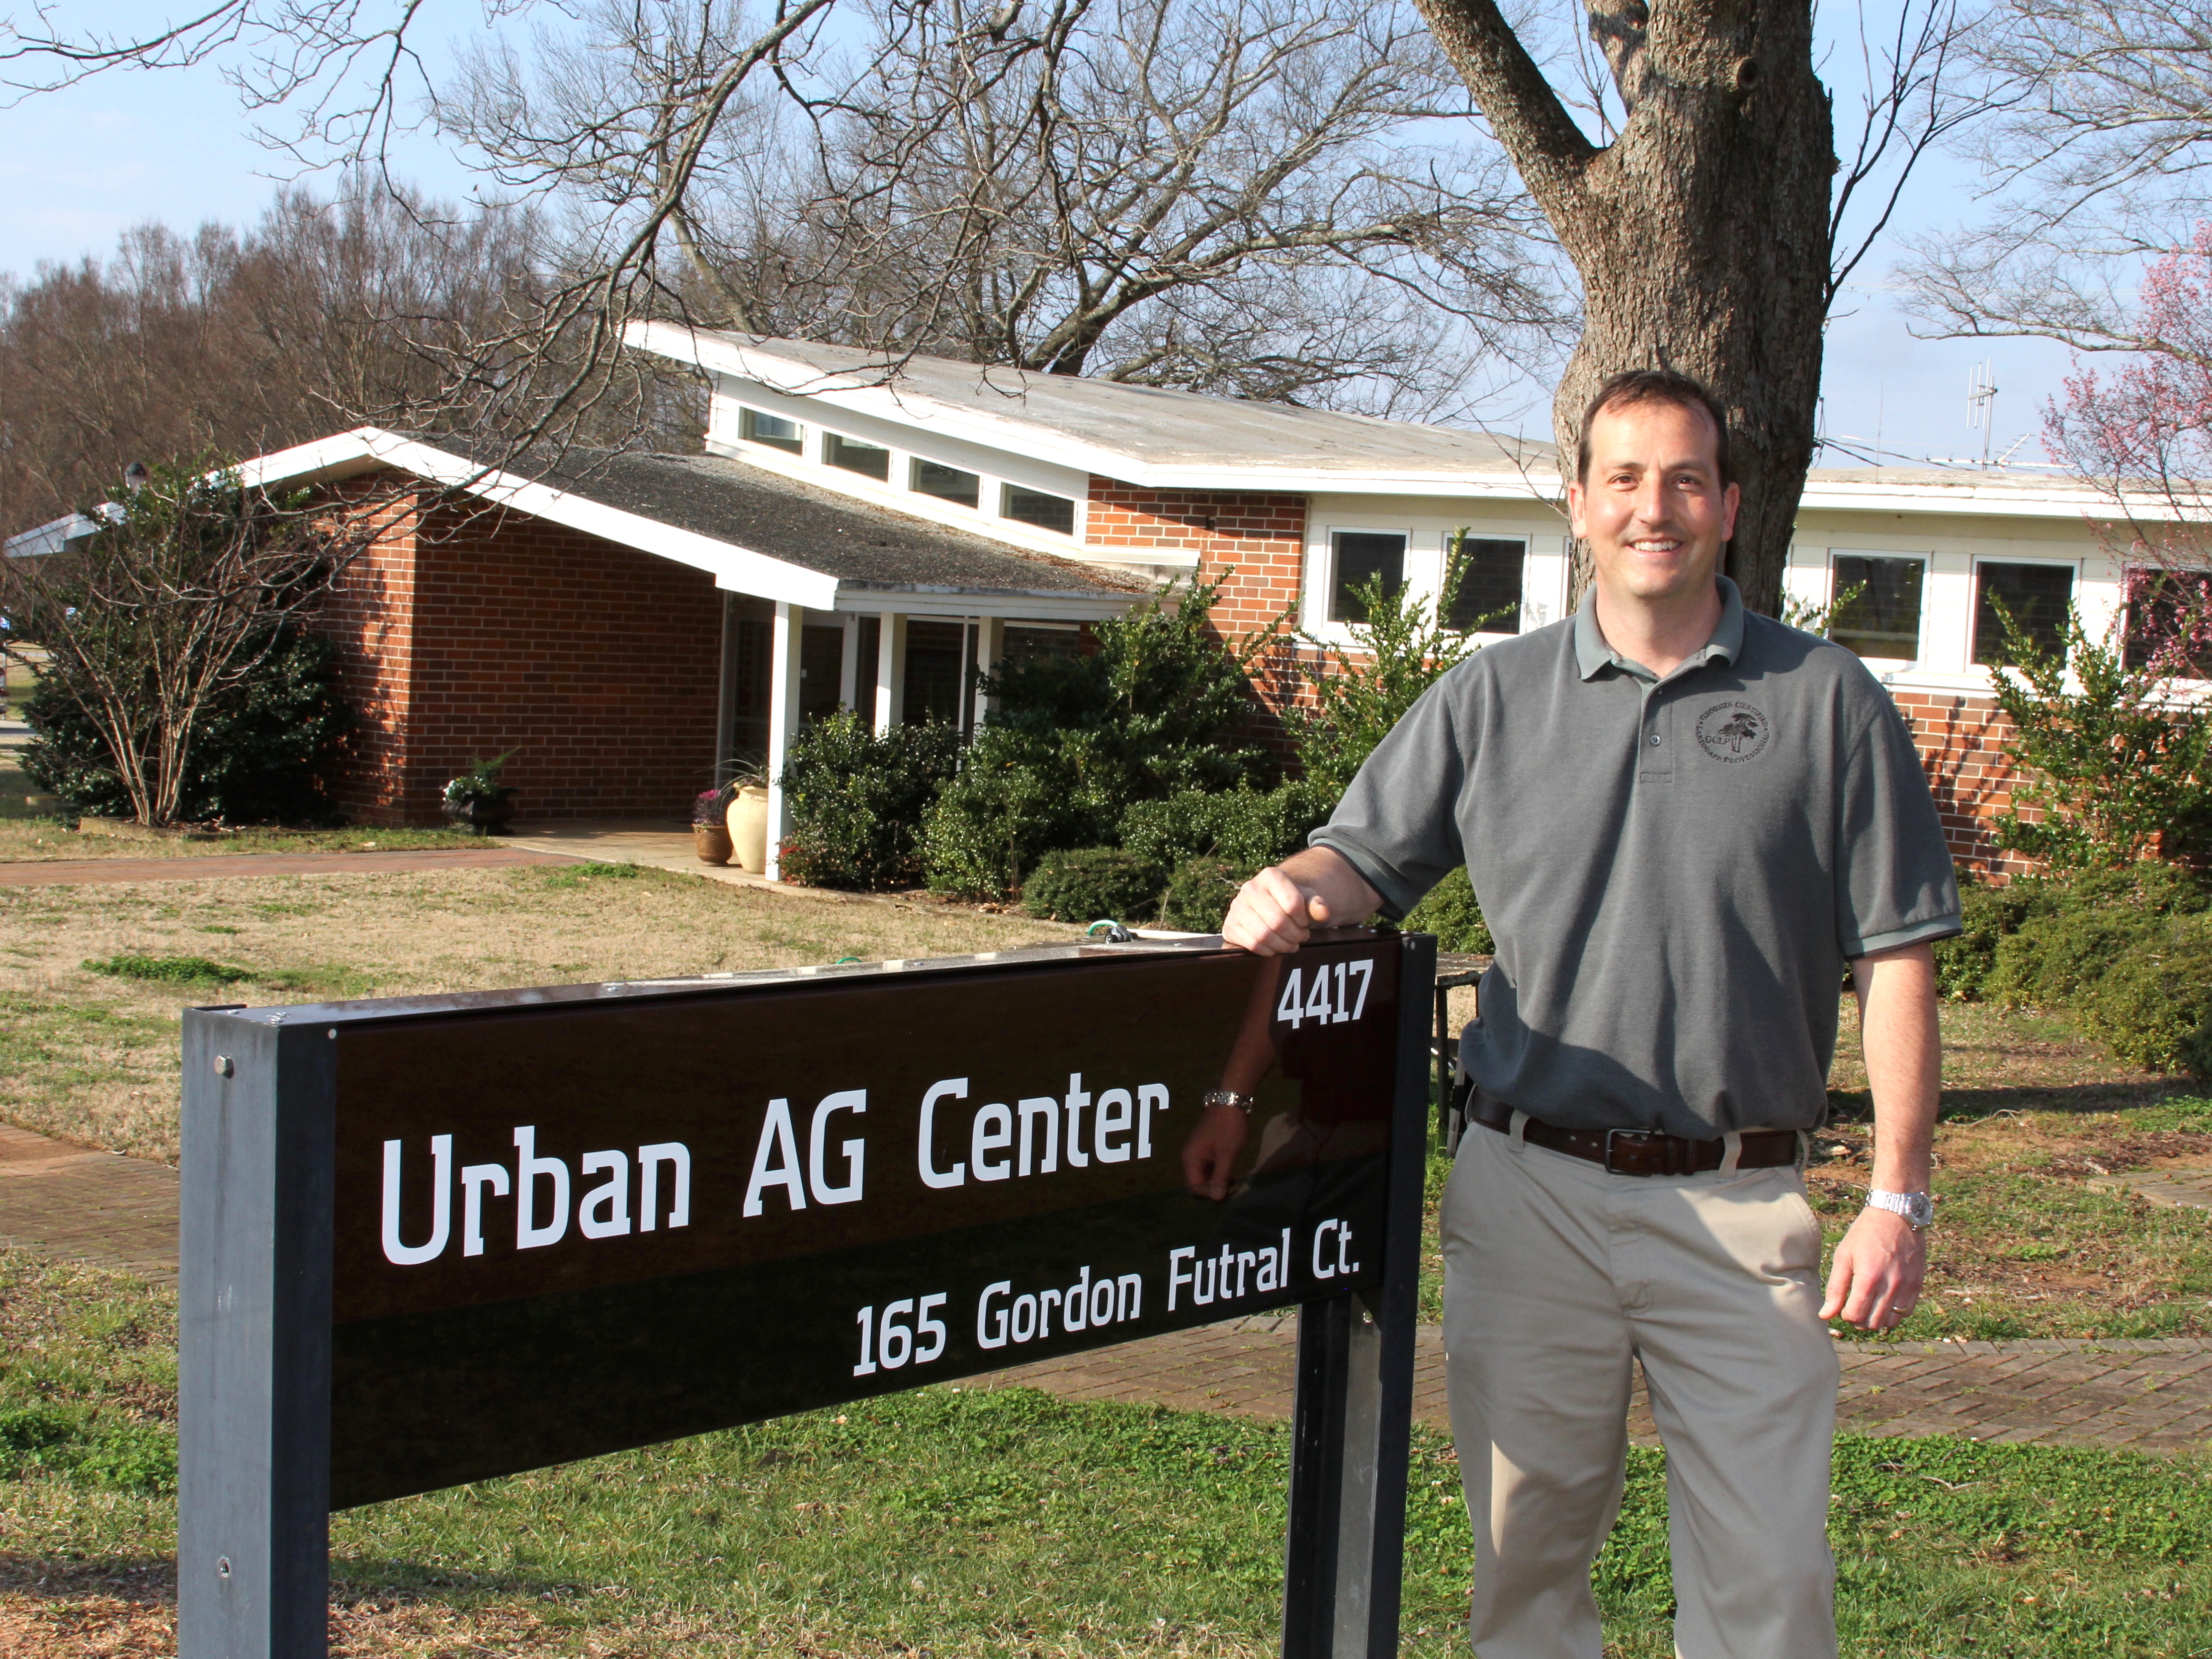 After spending the past 10 years as program coordinator, lead instructor and adviser for the horticulture program at Southern Crescent Technical College in Griffin, Georgia, Greg Huber has joined the staff of the University of Georgia Center for Urban Agriculture. As the program's training coordinator, he now leads the university's Georgia Certified Landscape Professional (GCLP) and Georgia Certified Plant Professional programs.